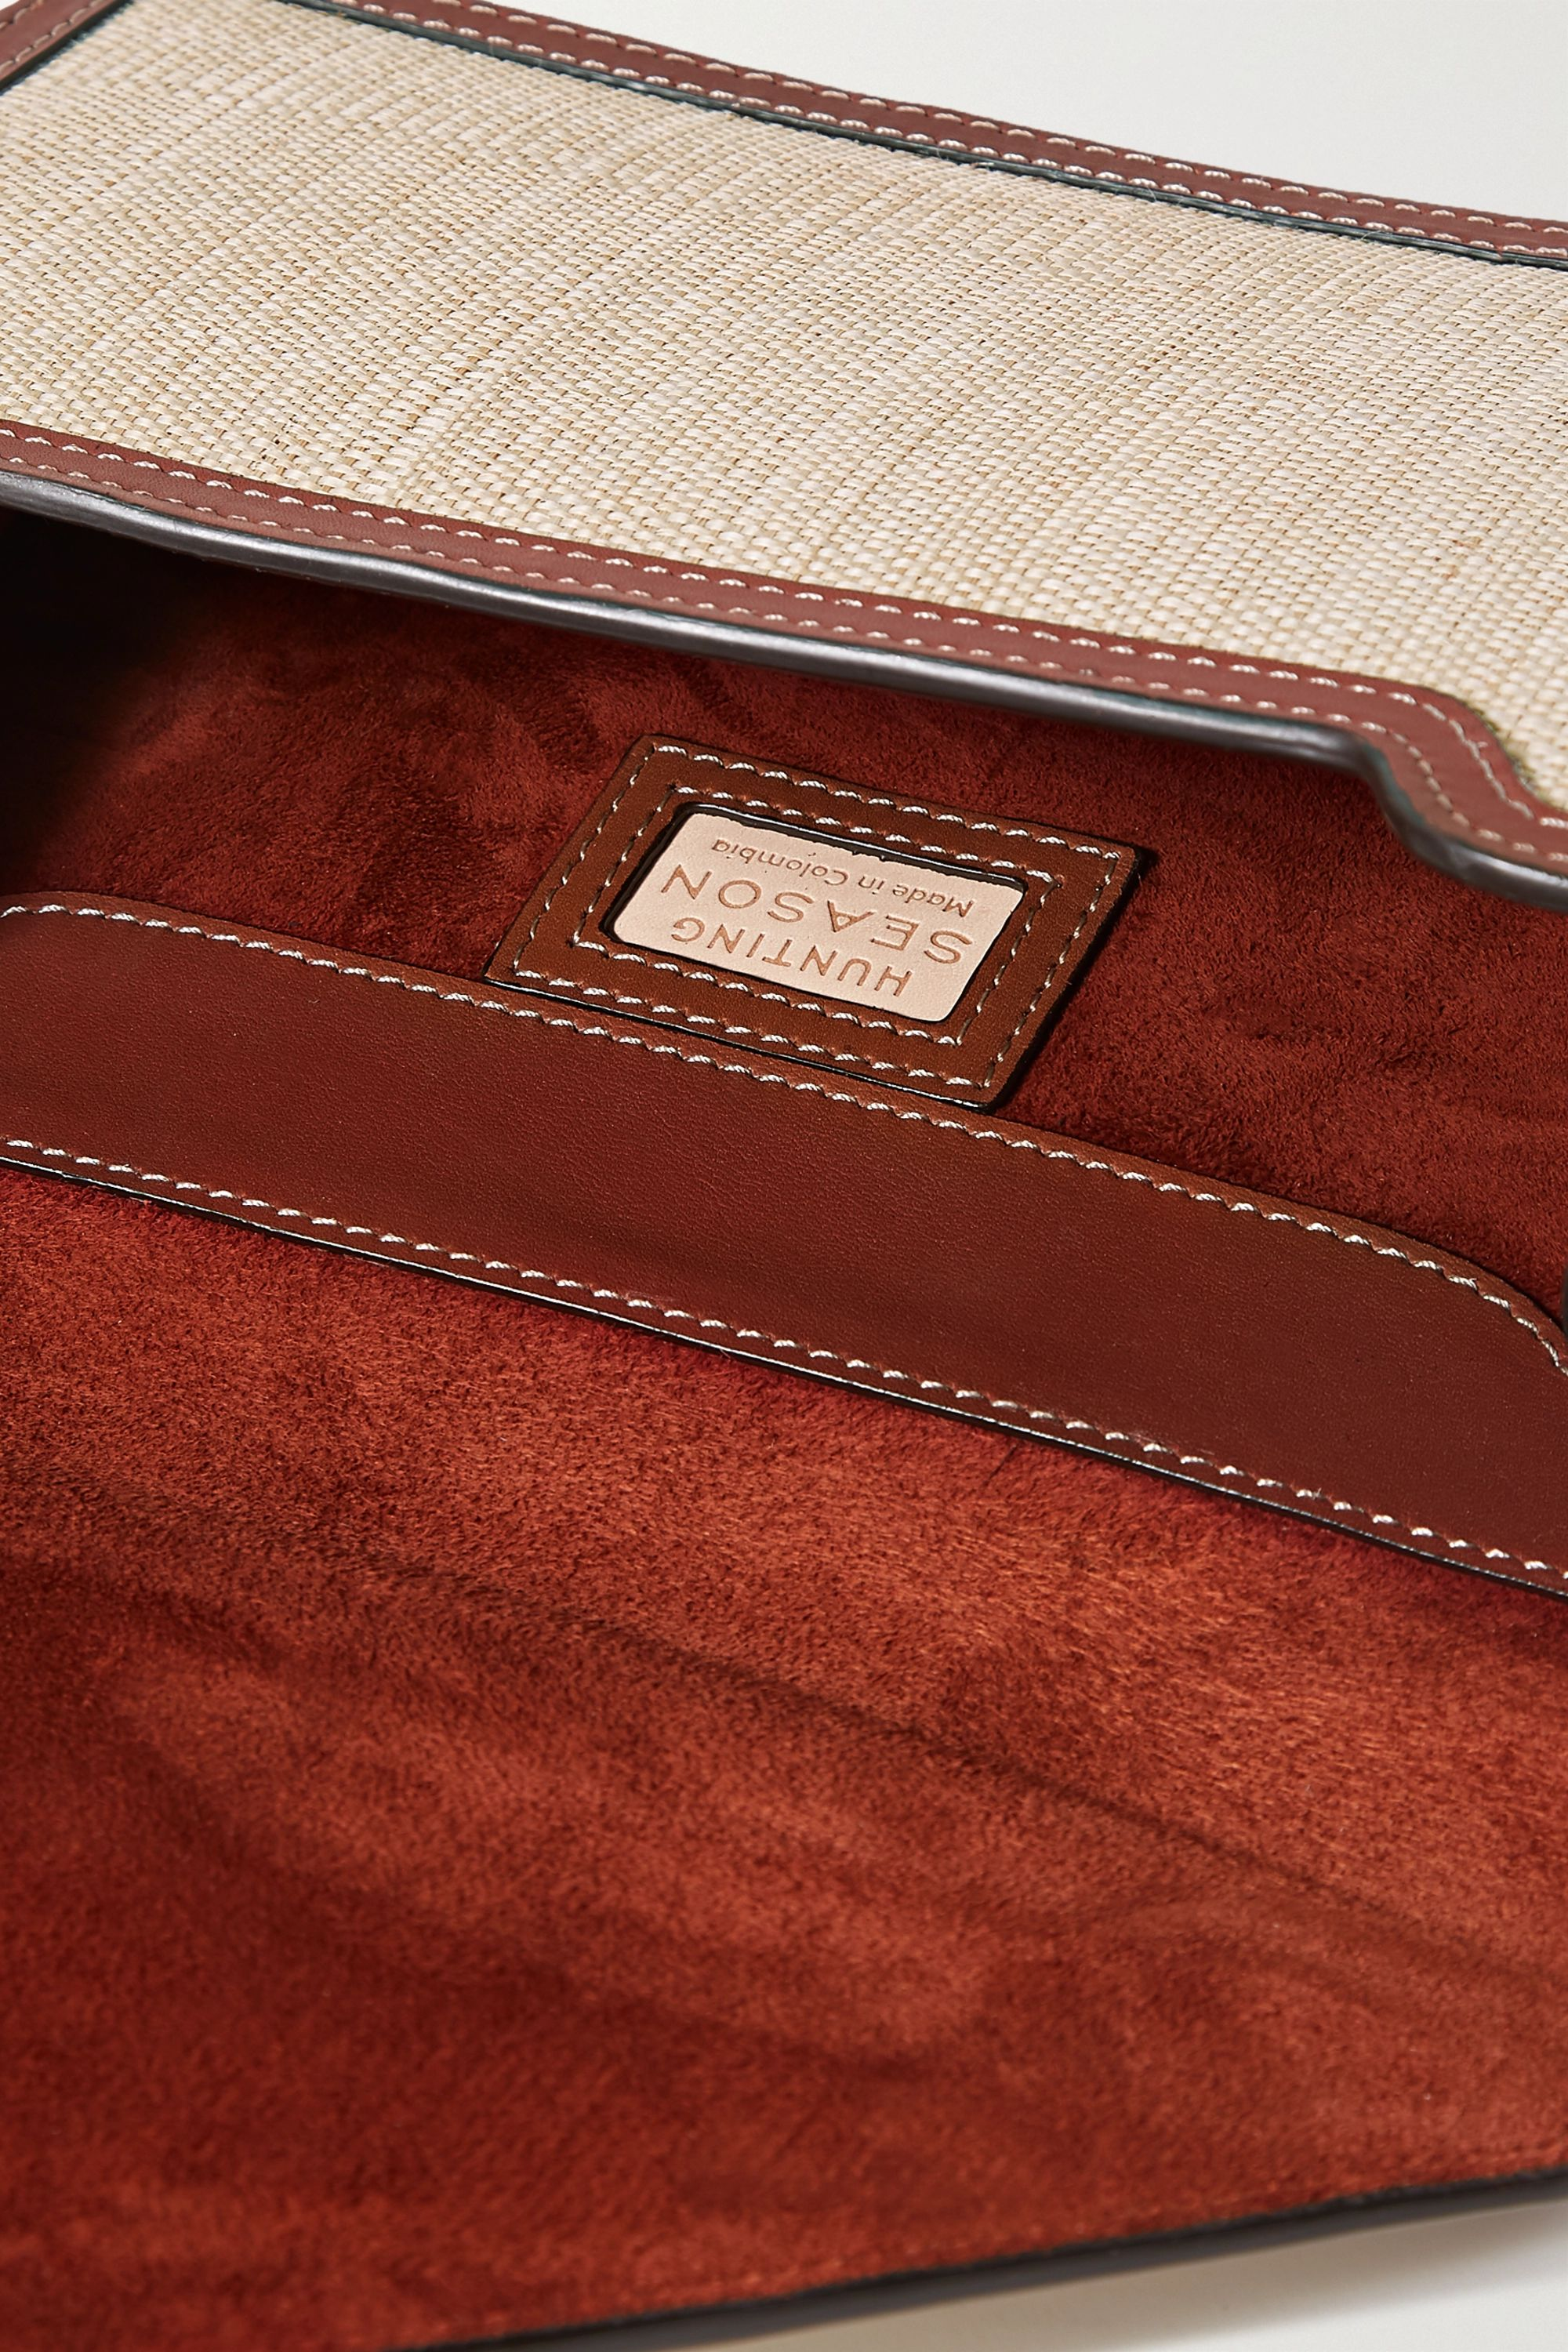 Hunting Season Envelope leather-trimmed fique clutch